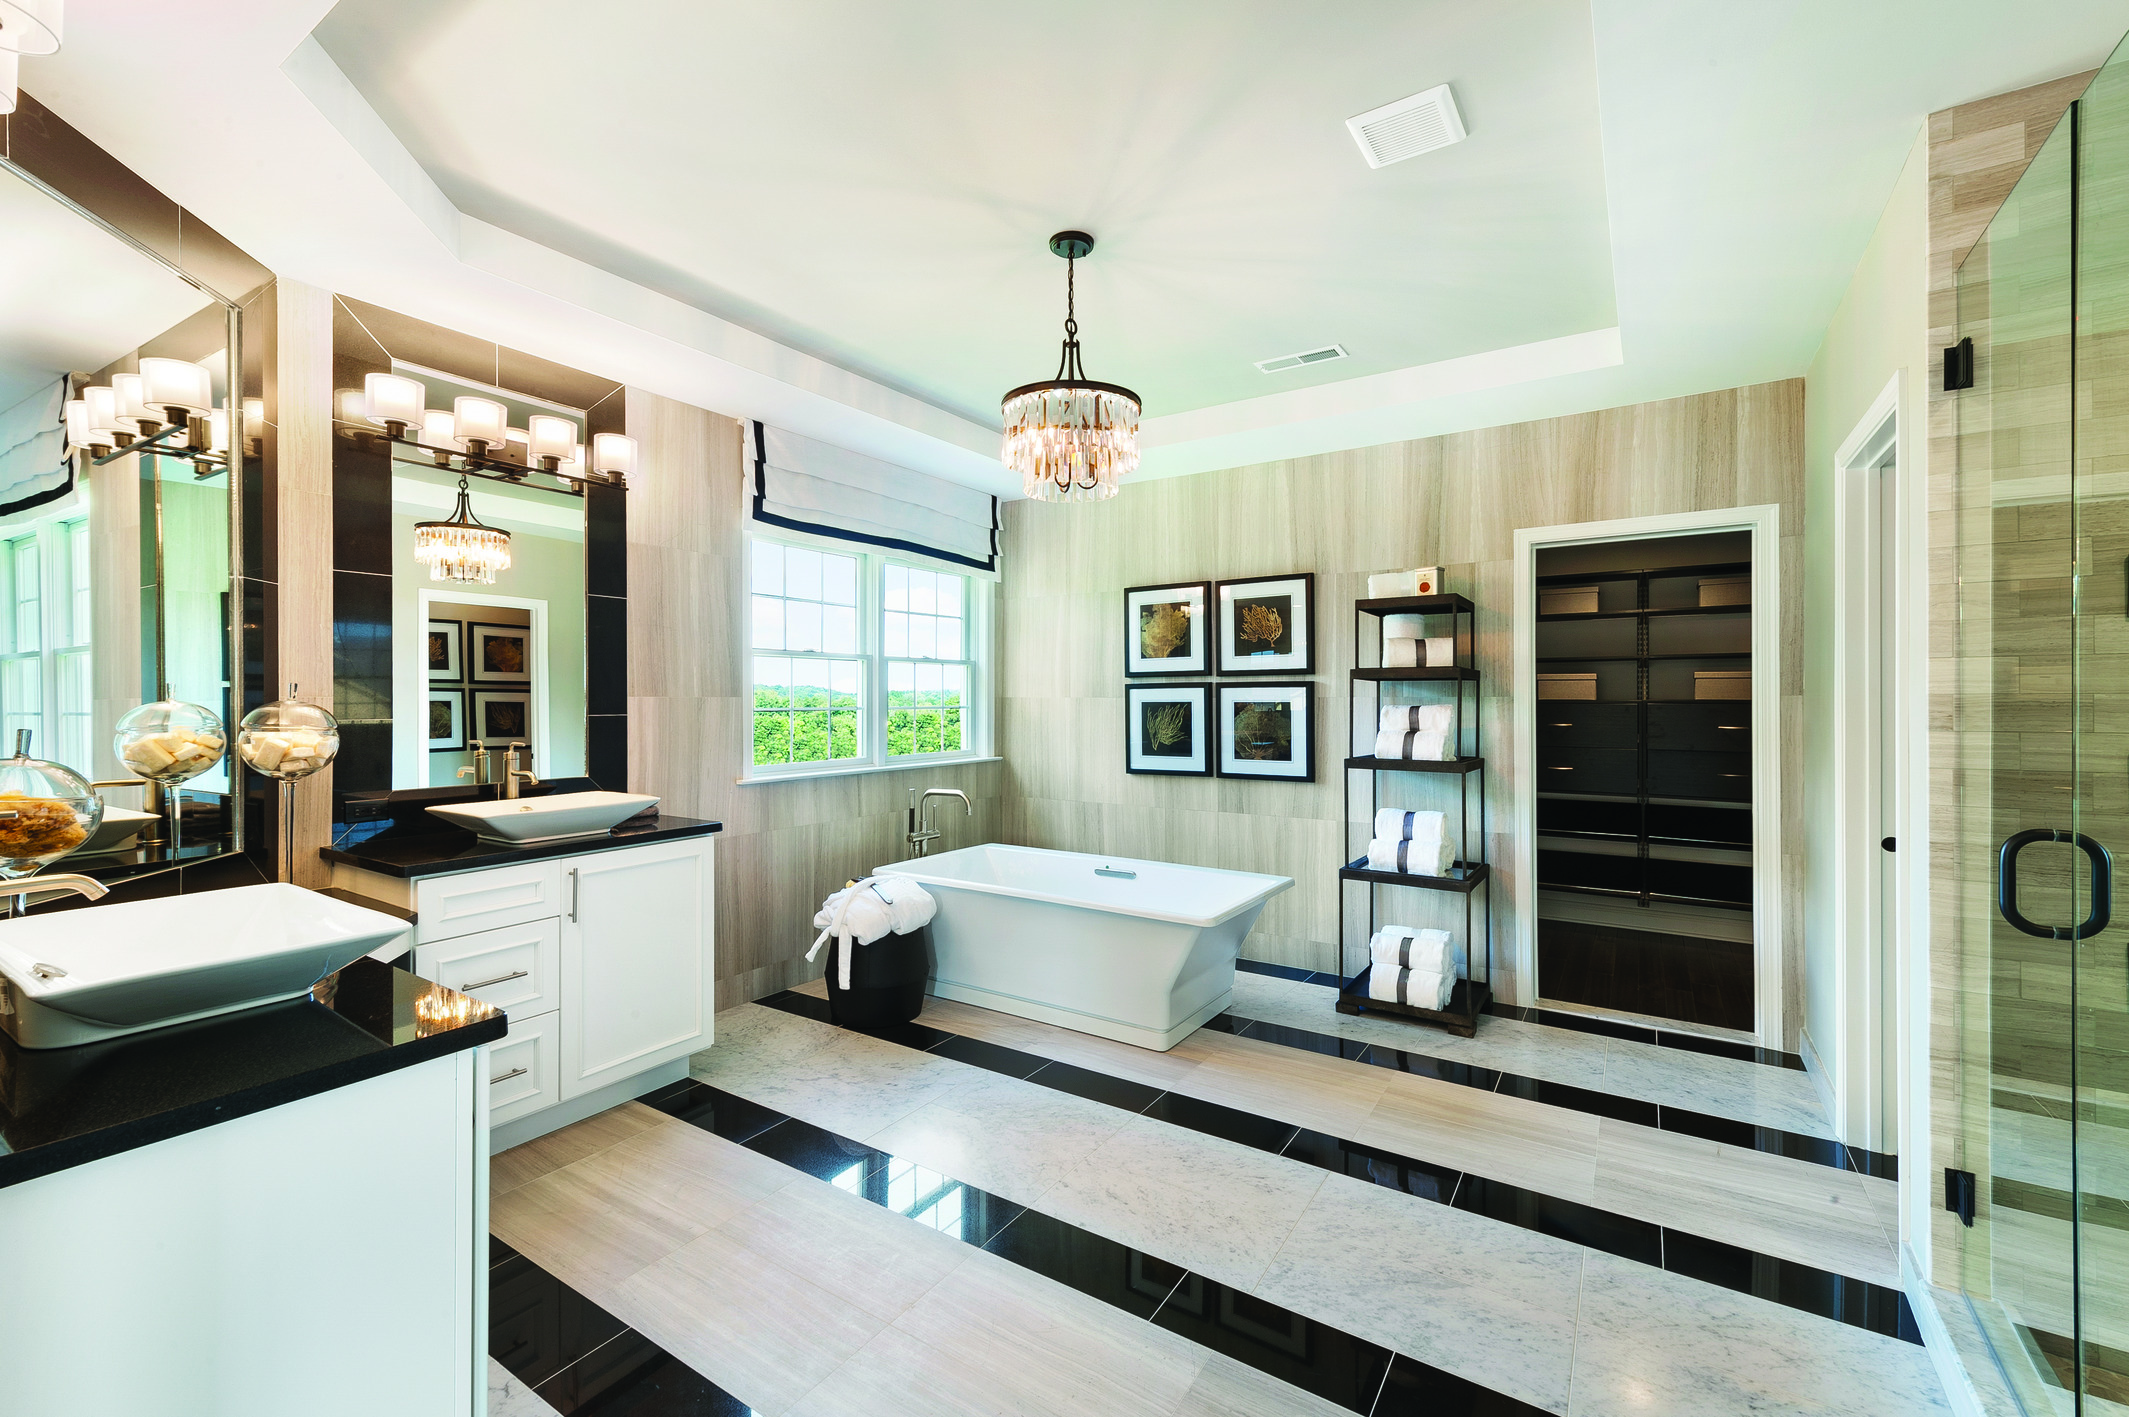 Bathroom with raised ceiling, lavish chandelier, freestanding bathtub, and dual display vanity